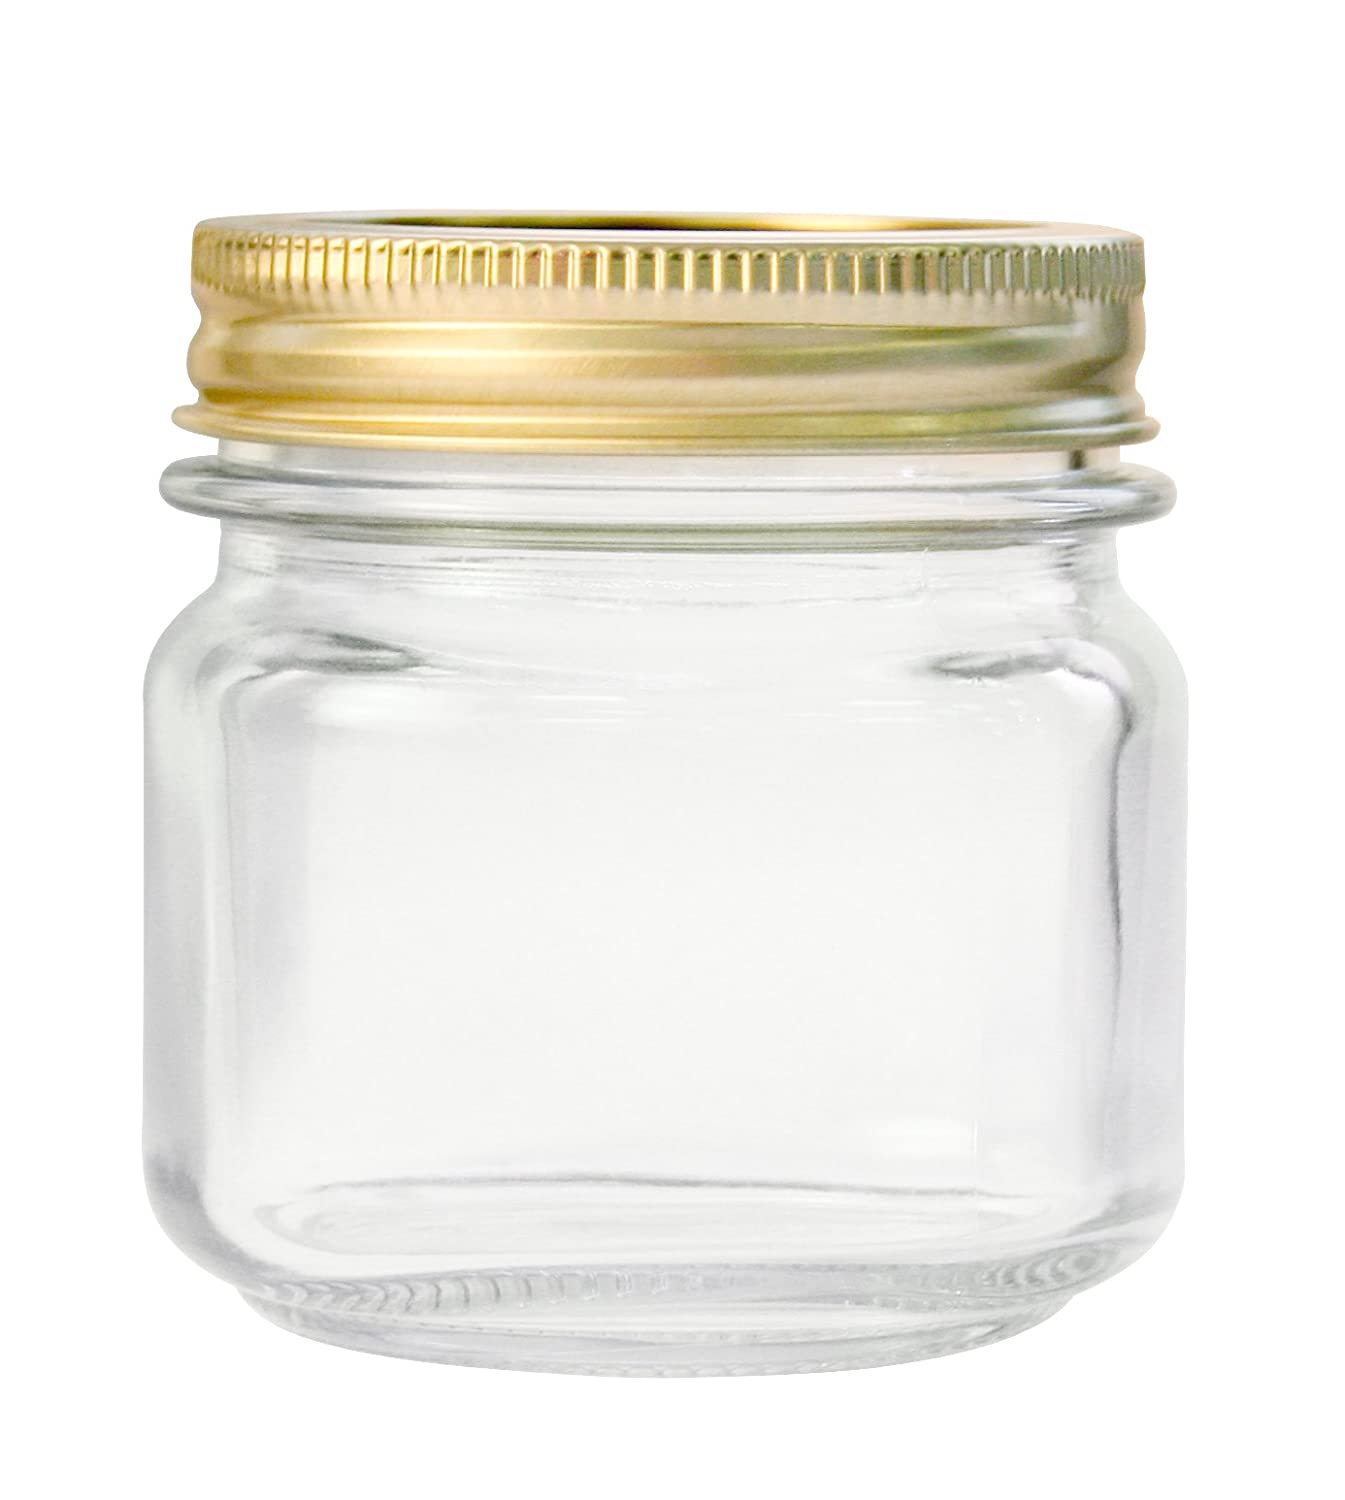 Anchor Hocking 10984 10984AHG17 1/2 Pint Home Canning Jars with Metal Lids and Rings Clear